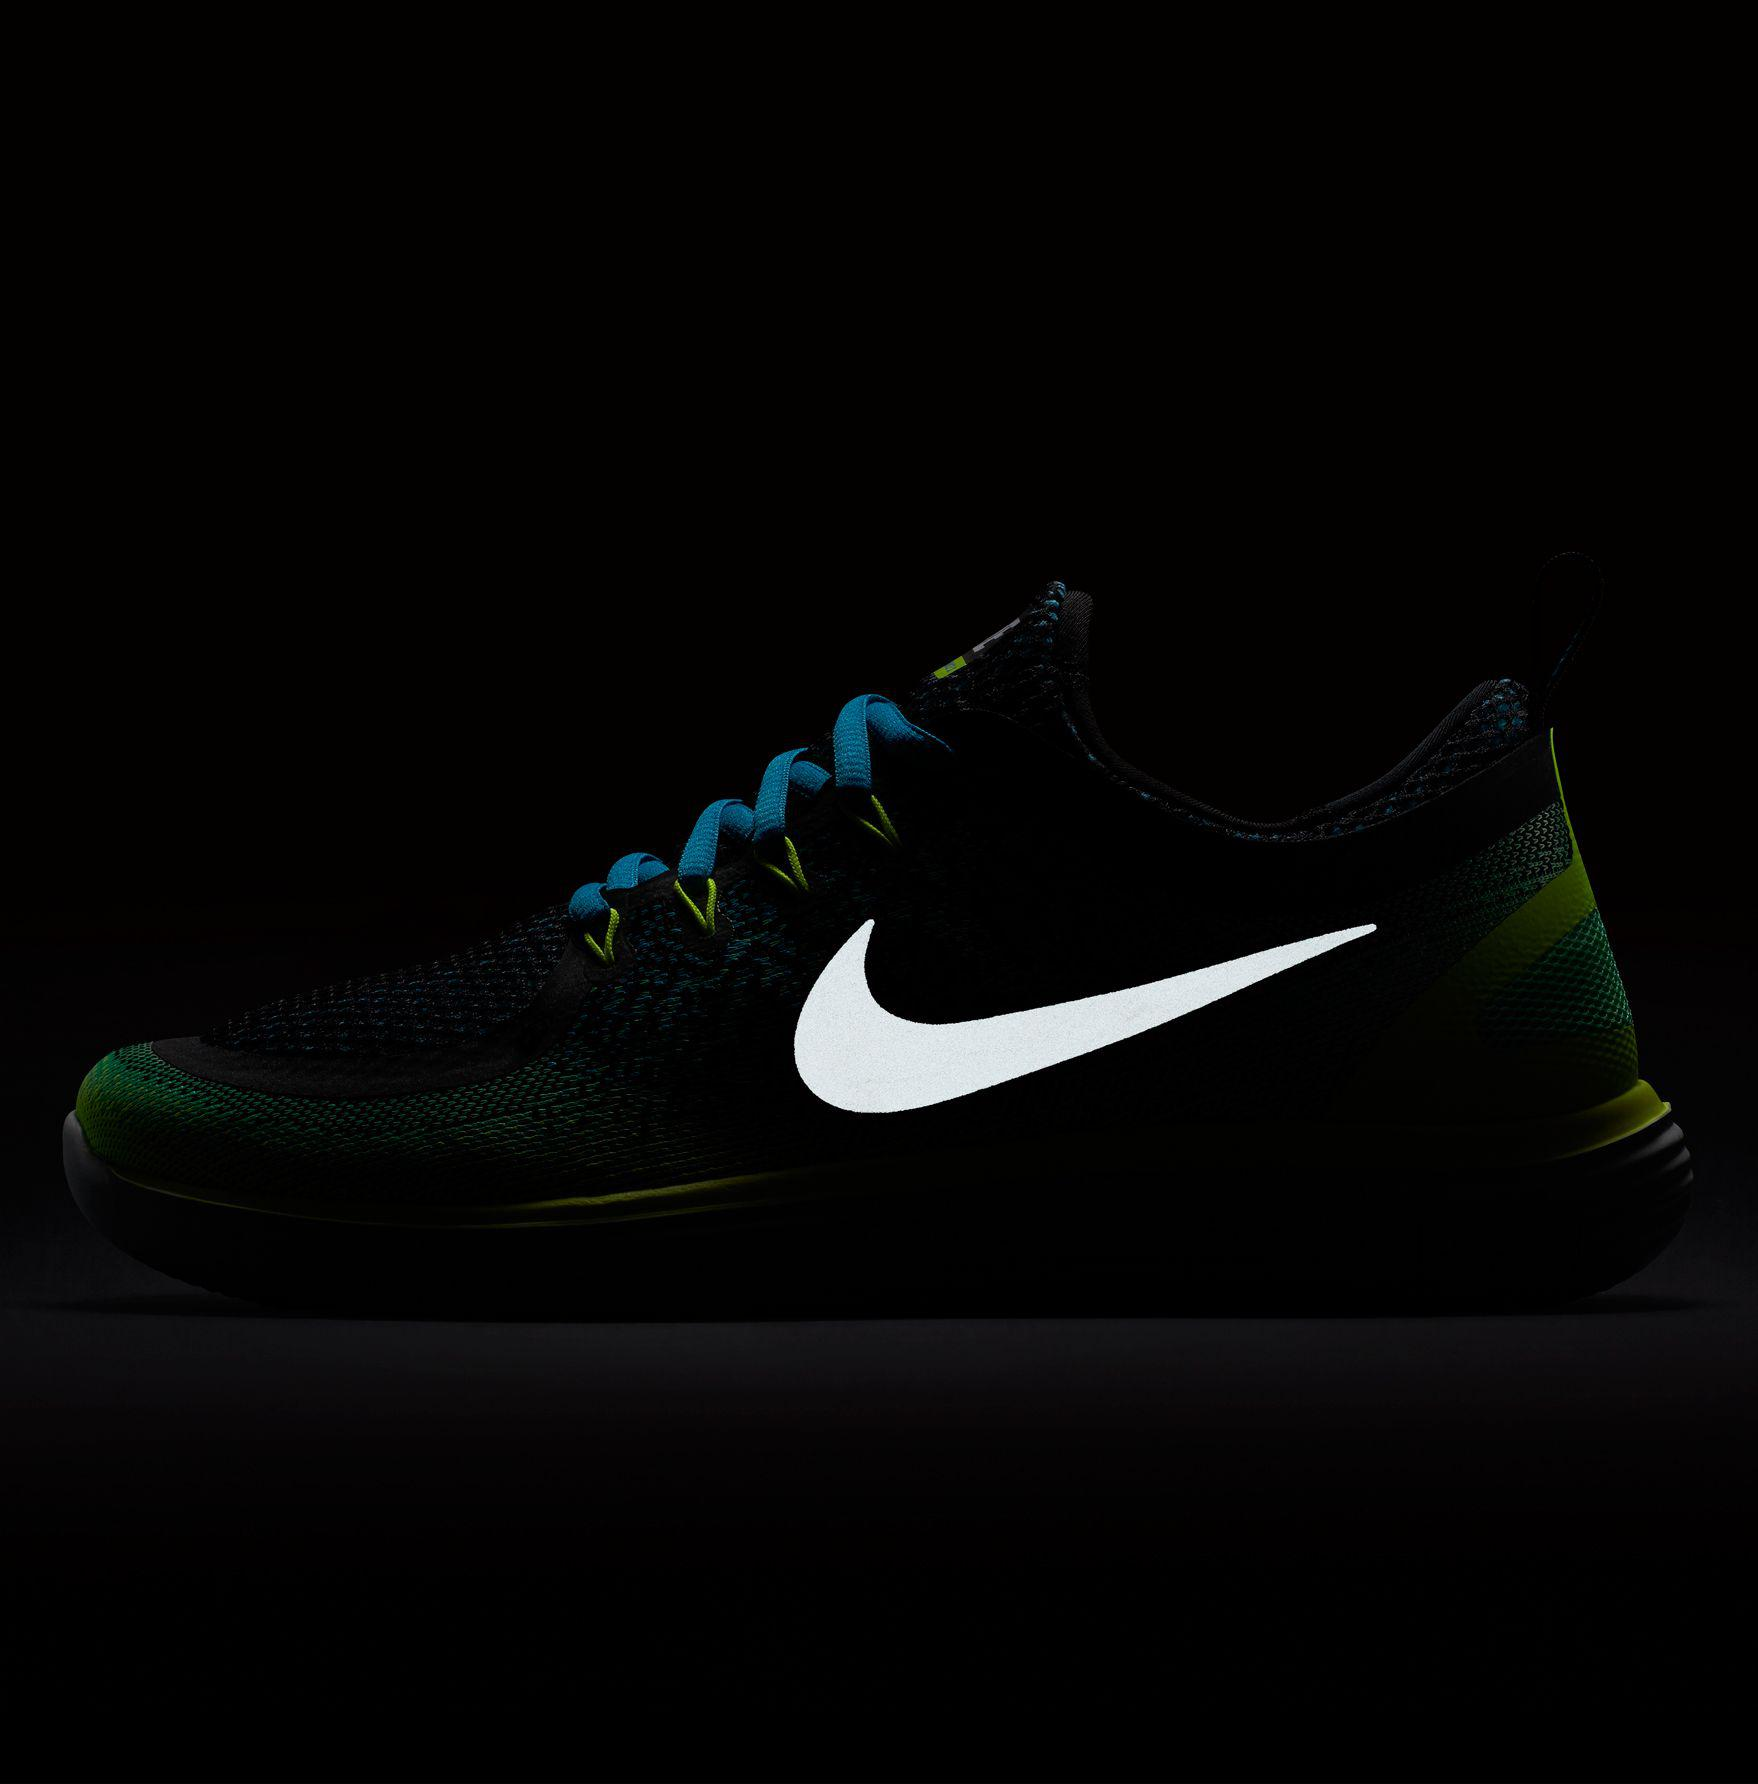 b316bc353b191 Lyst - Nike Free Rn Distance 2 Running Shoes in Green for Men